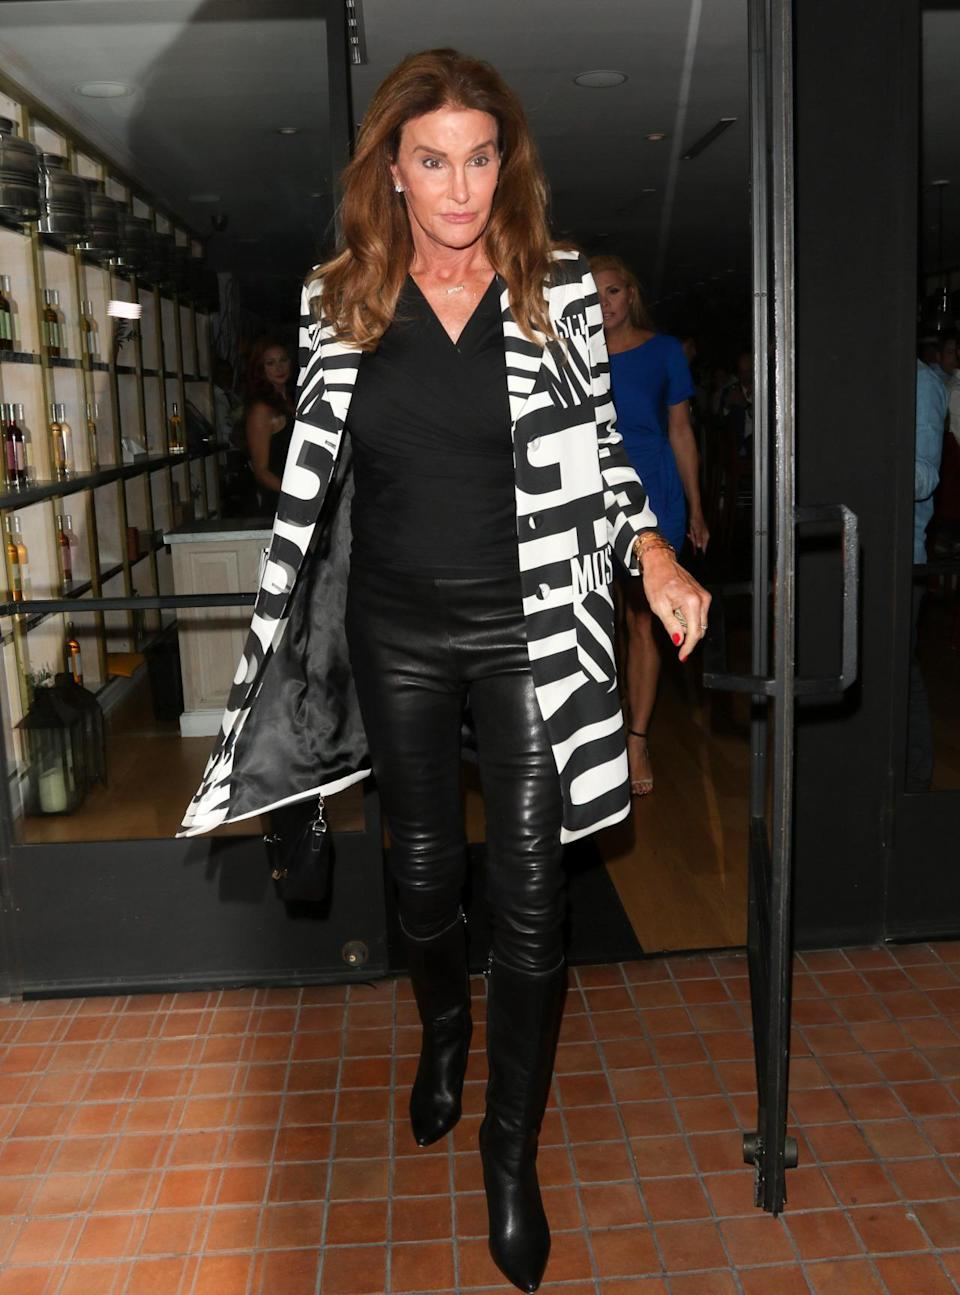 <p>Out to dinner in Los Angeles with friend Candis Cayne, Caitlyn Jenner served up fall style inspiration. Wearing all black — a pair of leather pants, black wrap jersey top, and knee-high boots — she took the monochromatic look to the next level with a Moschino jacket. The black and white bold-lettered coat was certainly a statement piece, and Jenner rightly paired it with a simple outfit.</p>